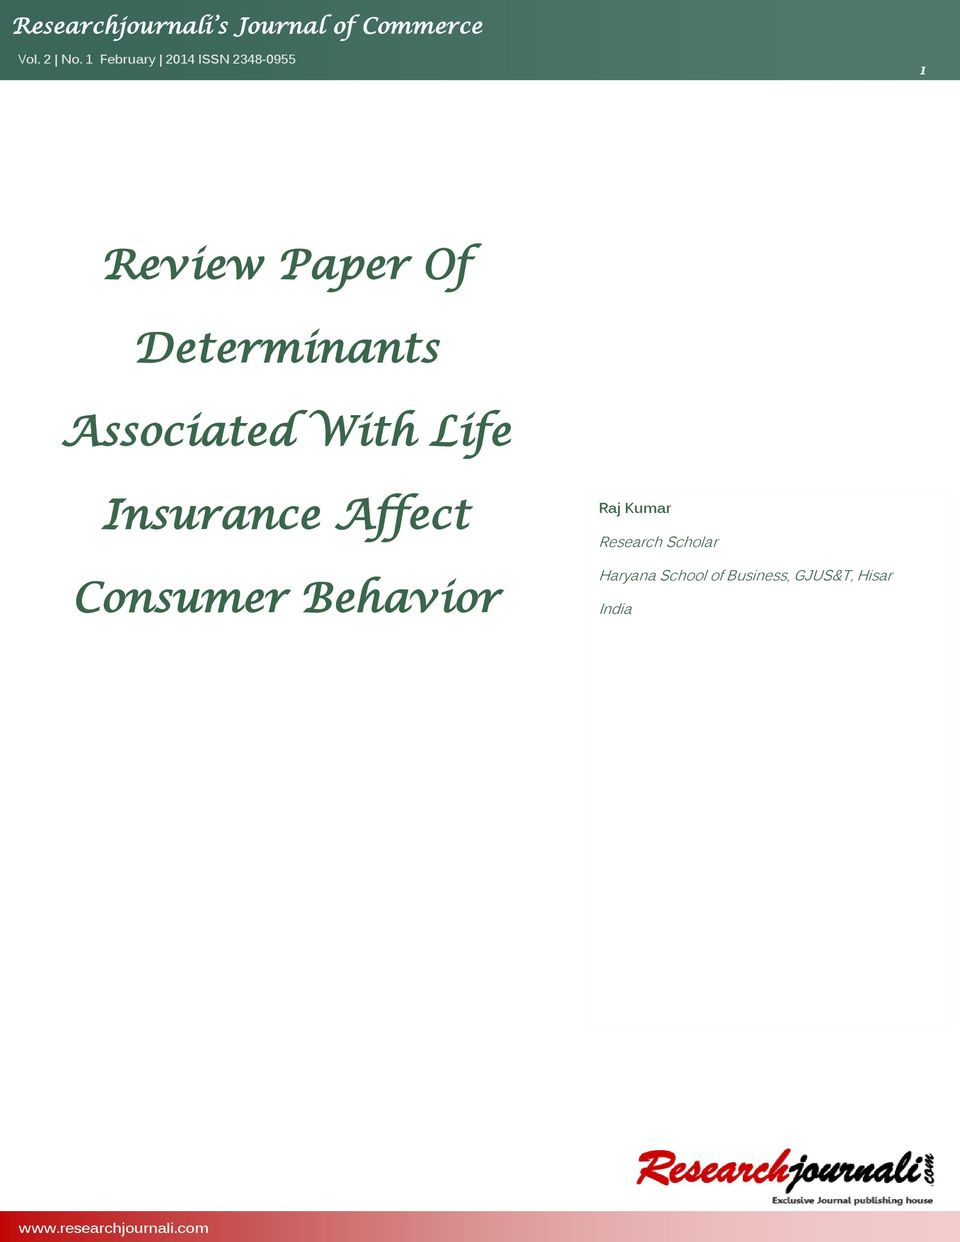 literature review of customer satisfaction in banking sector Services quality and customer satisfaction in the banking literature review which examined service quality and customer satisfaction in banking.